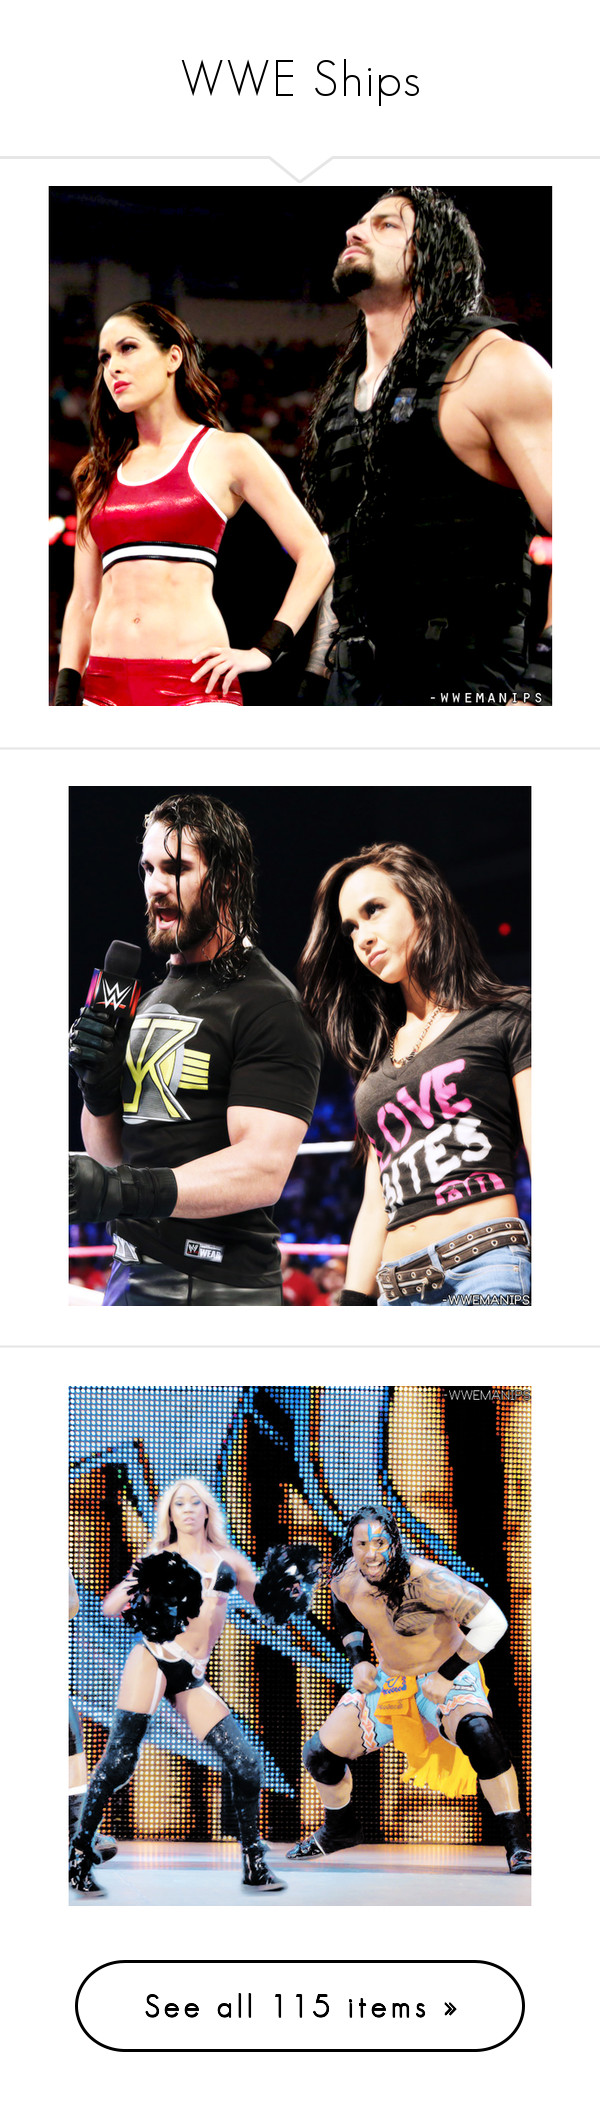 Wwe Ships By Godslastgift Liked On Polyvore Featuring Wwe